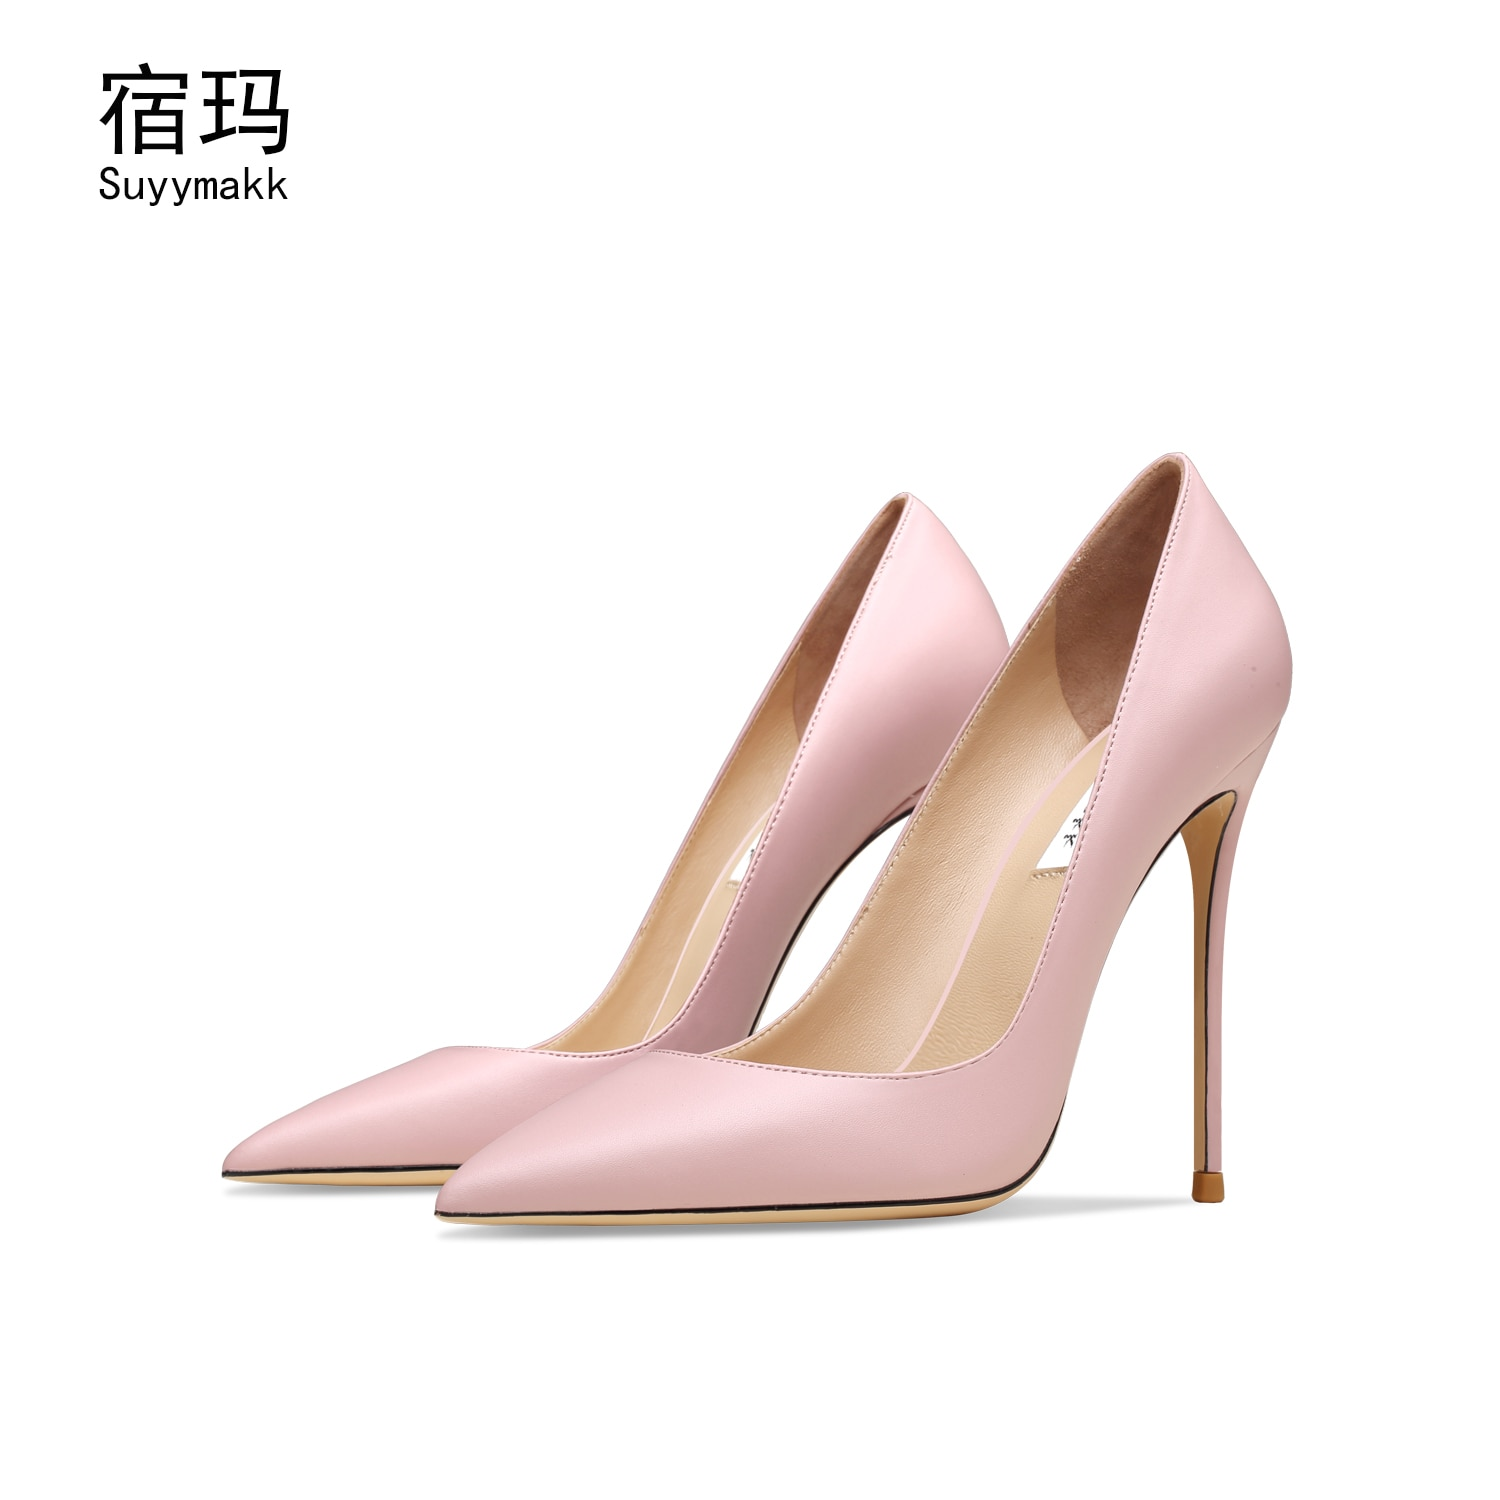 Genuine Leather Classic Pumps Women High Heels Sexy Wedding Shoes Stiletto Shoes Pointed Toe Large Lady Dress Shoes Size 6/10cm onlymaker women s pointed toe block classic 12cm high heels slip on thick shoes wedding office dress big size chunky lady pumps